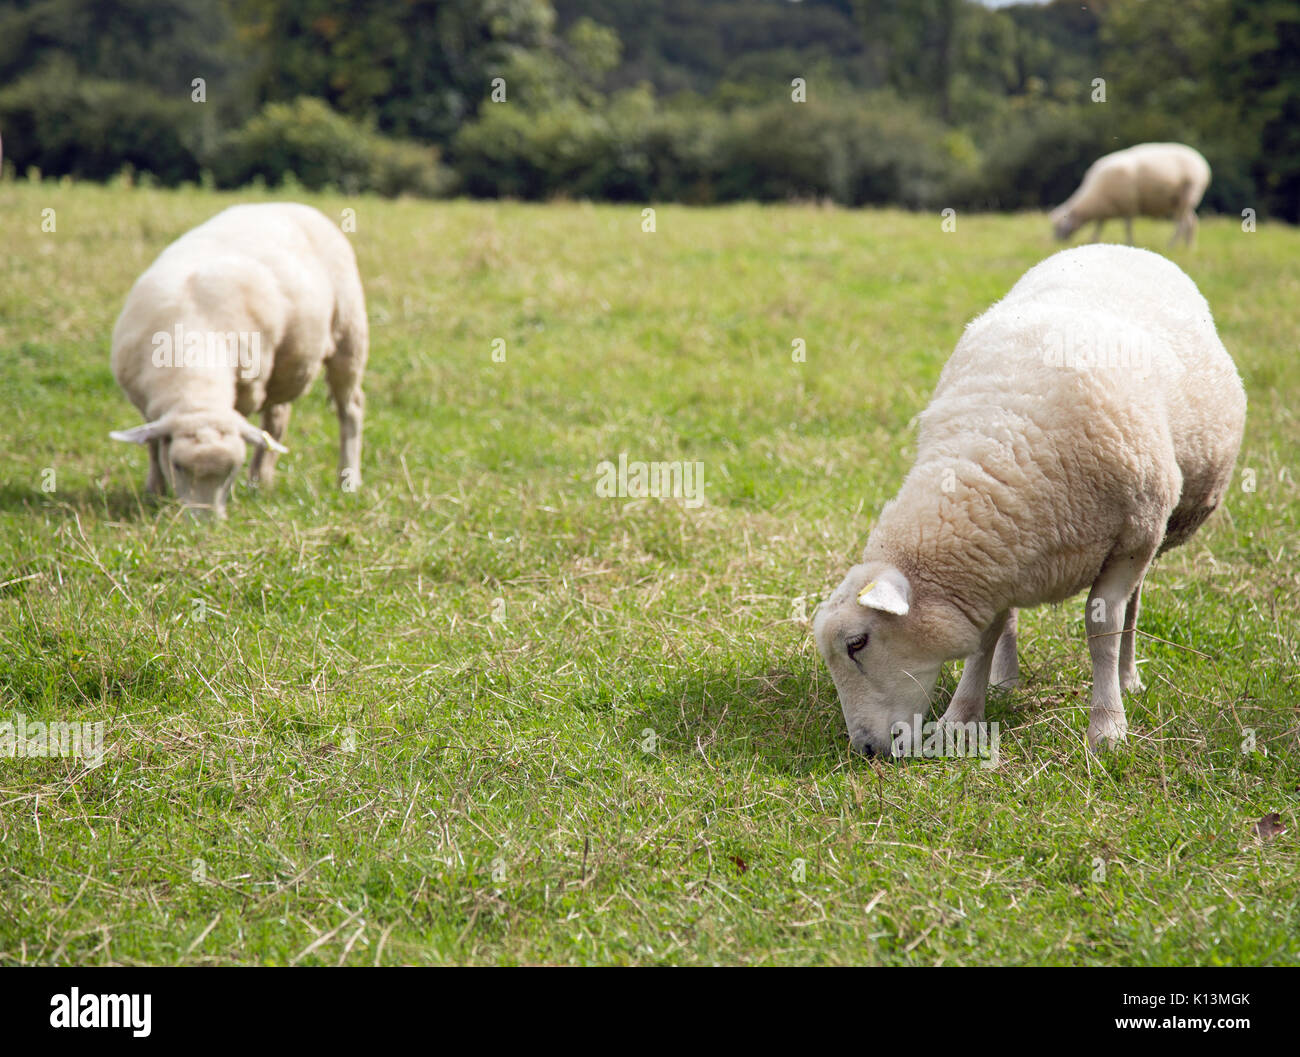 Sheep Tails Stock Photos & Sheep Tails Stock Images - Alamy